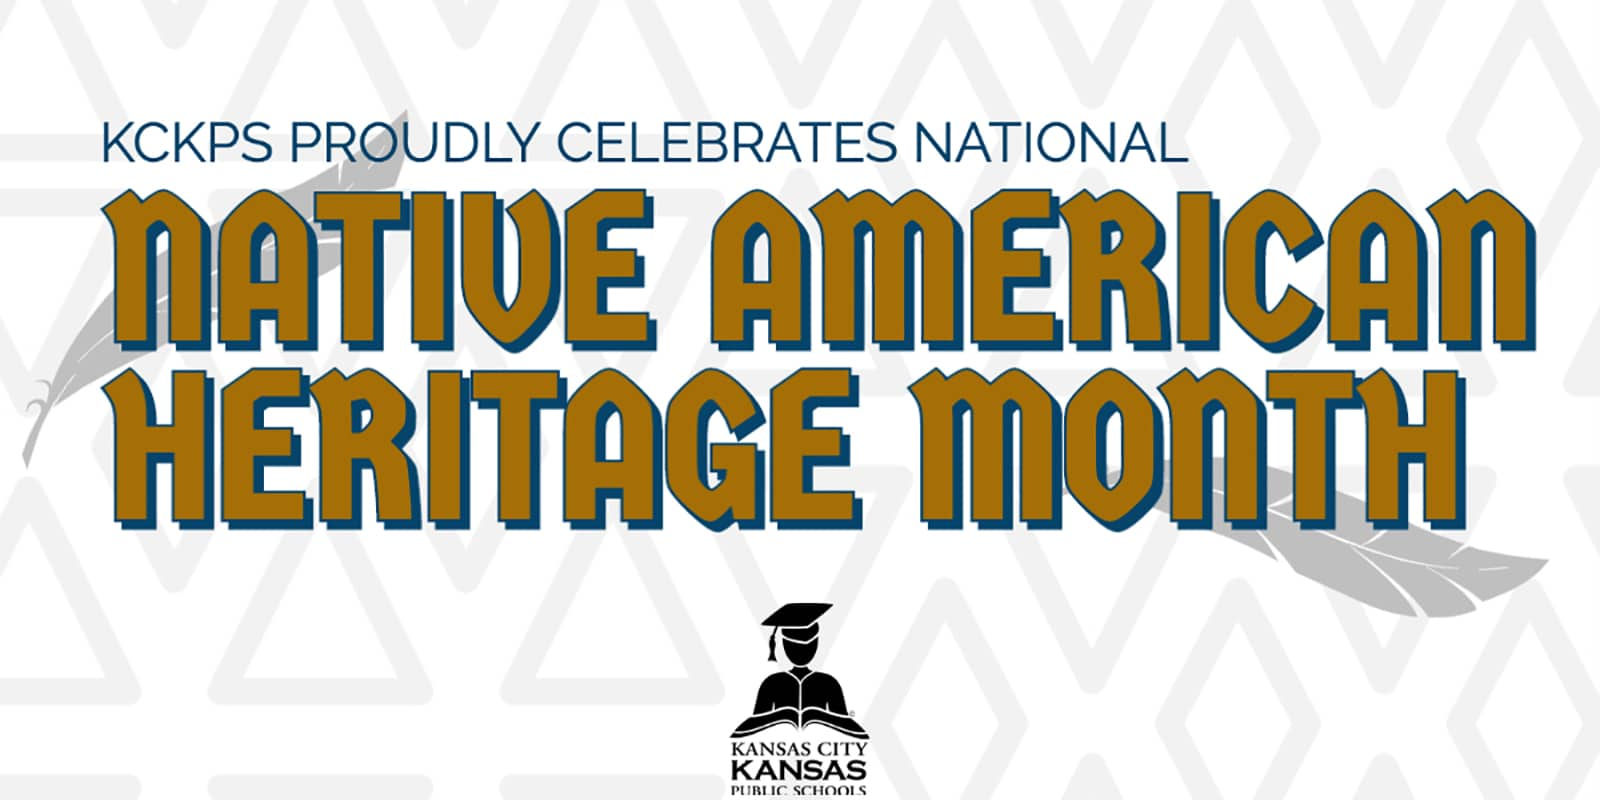 KCKPS Proudly Celebrates National Native American Heritage Month